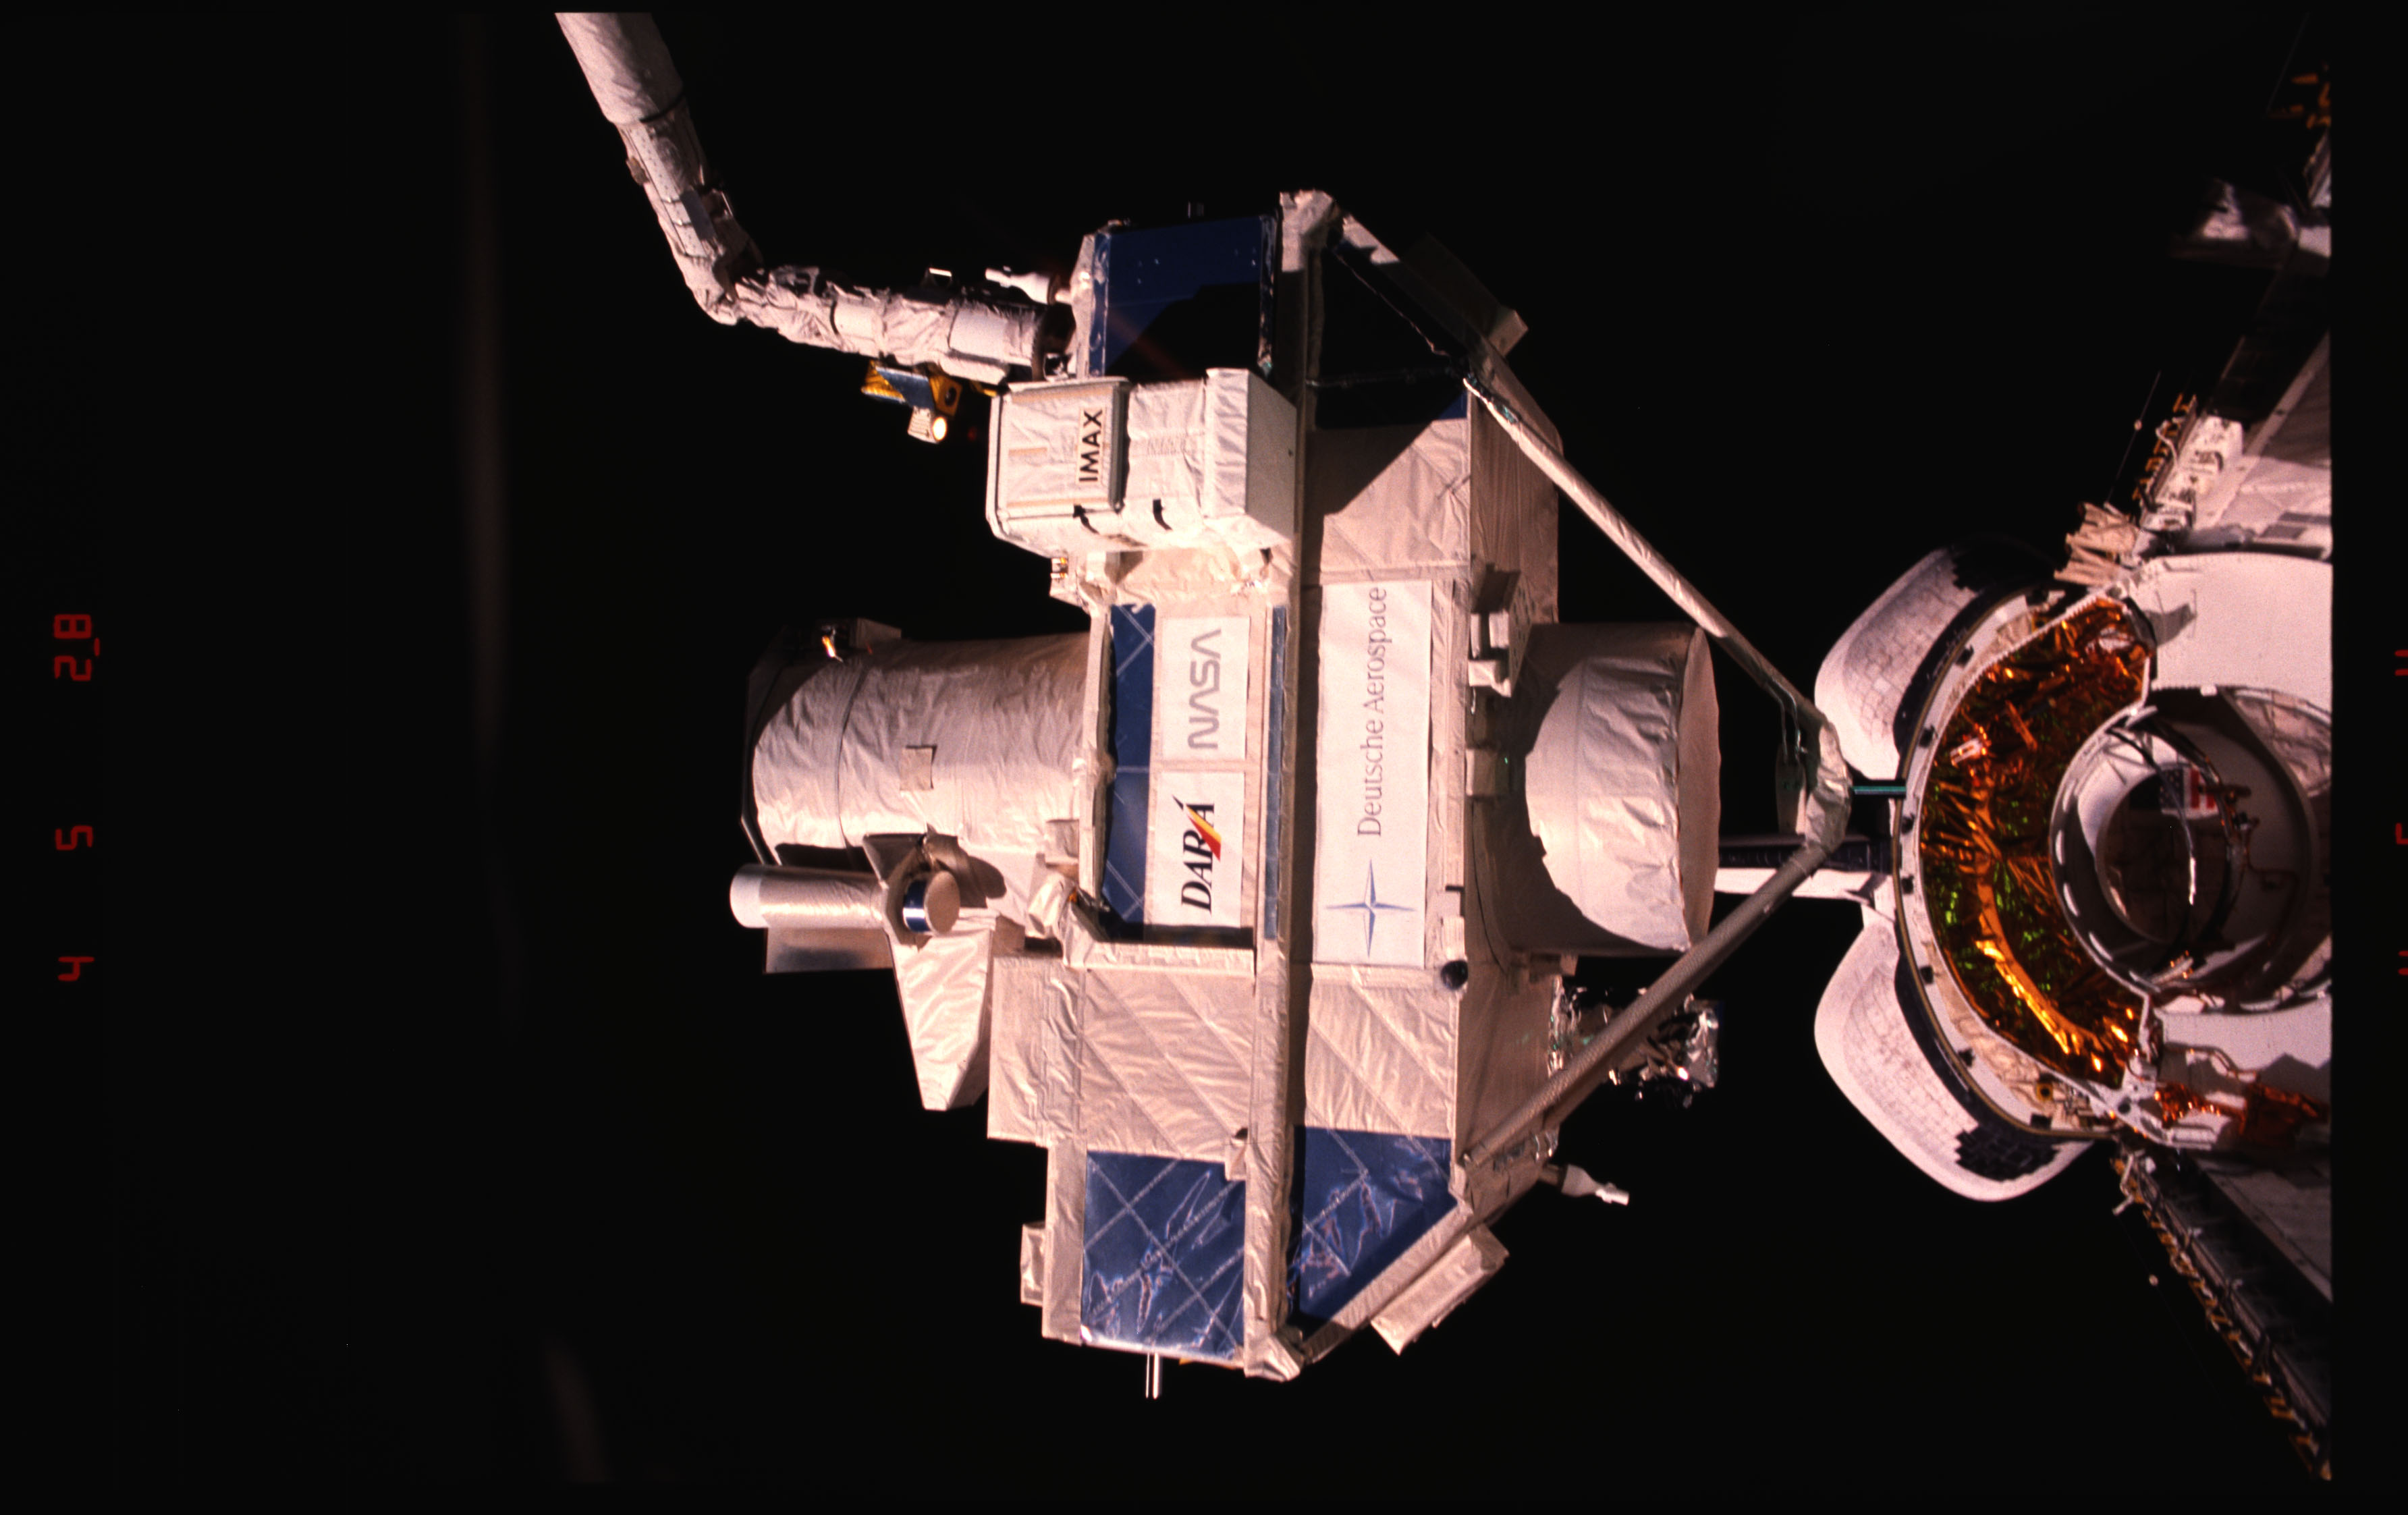 STS051-15-026 - STS-051 - OREFEUS-SPAS: ORFEUS-SPAS hovers over the payload bay on RMS